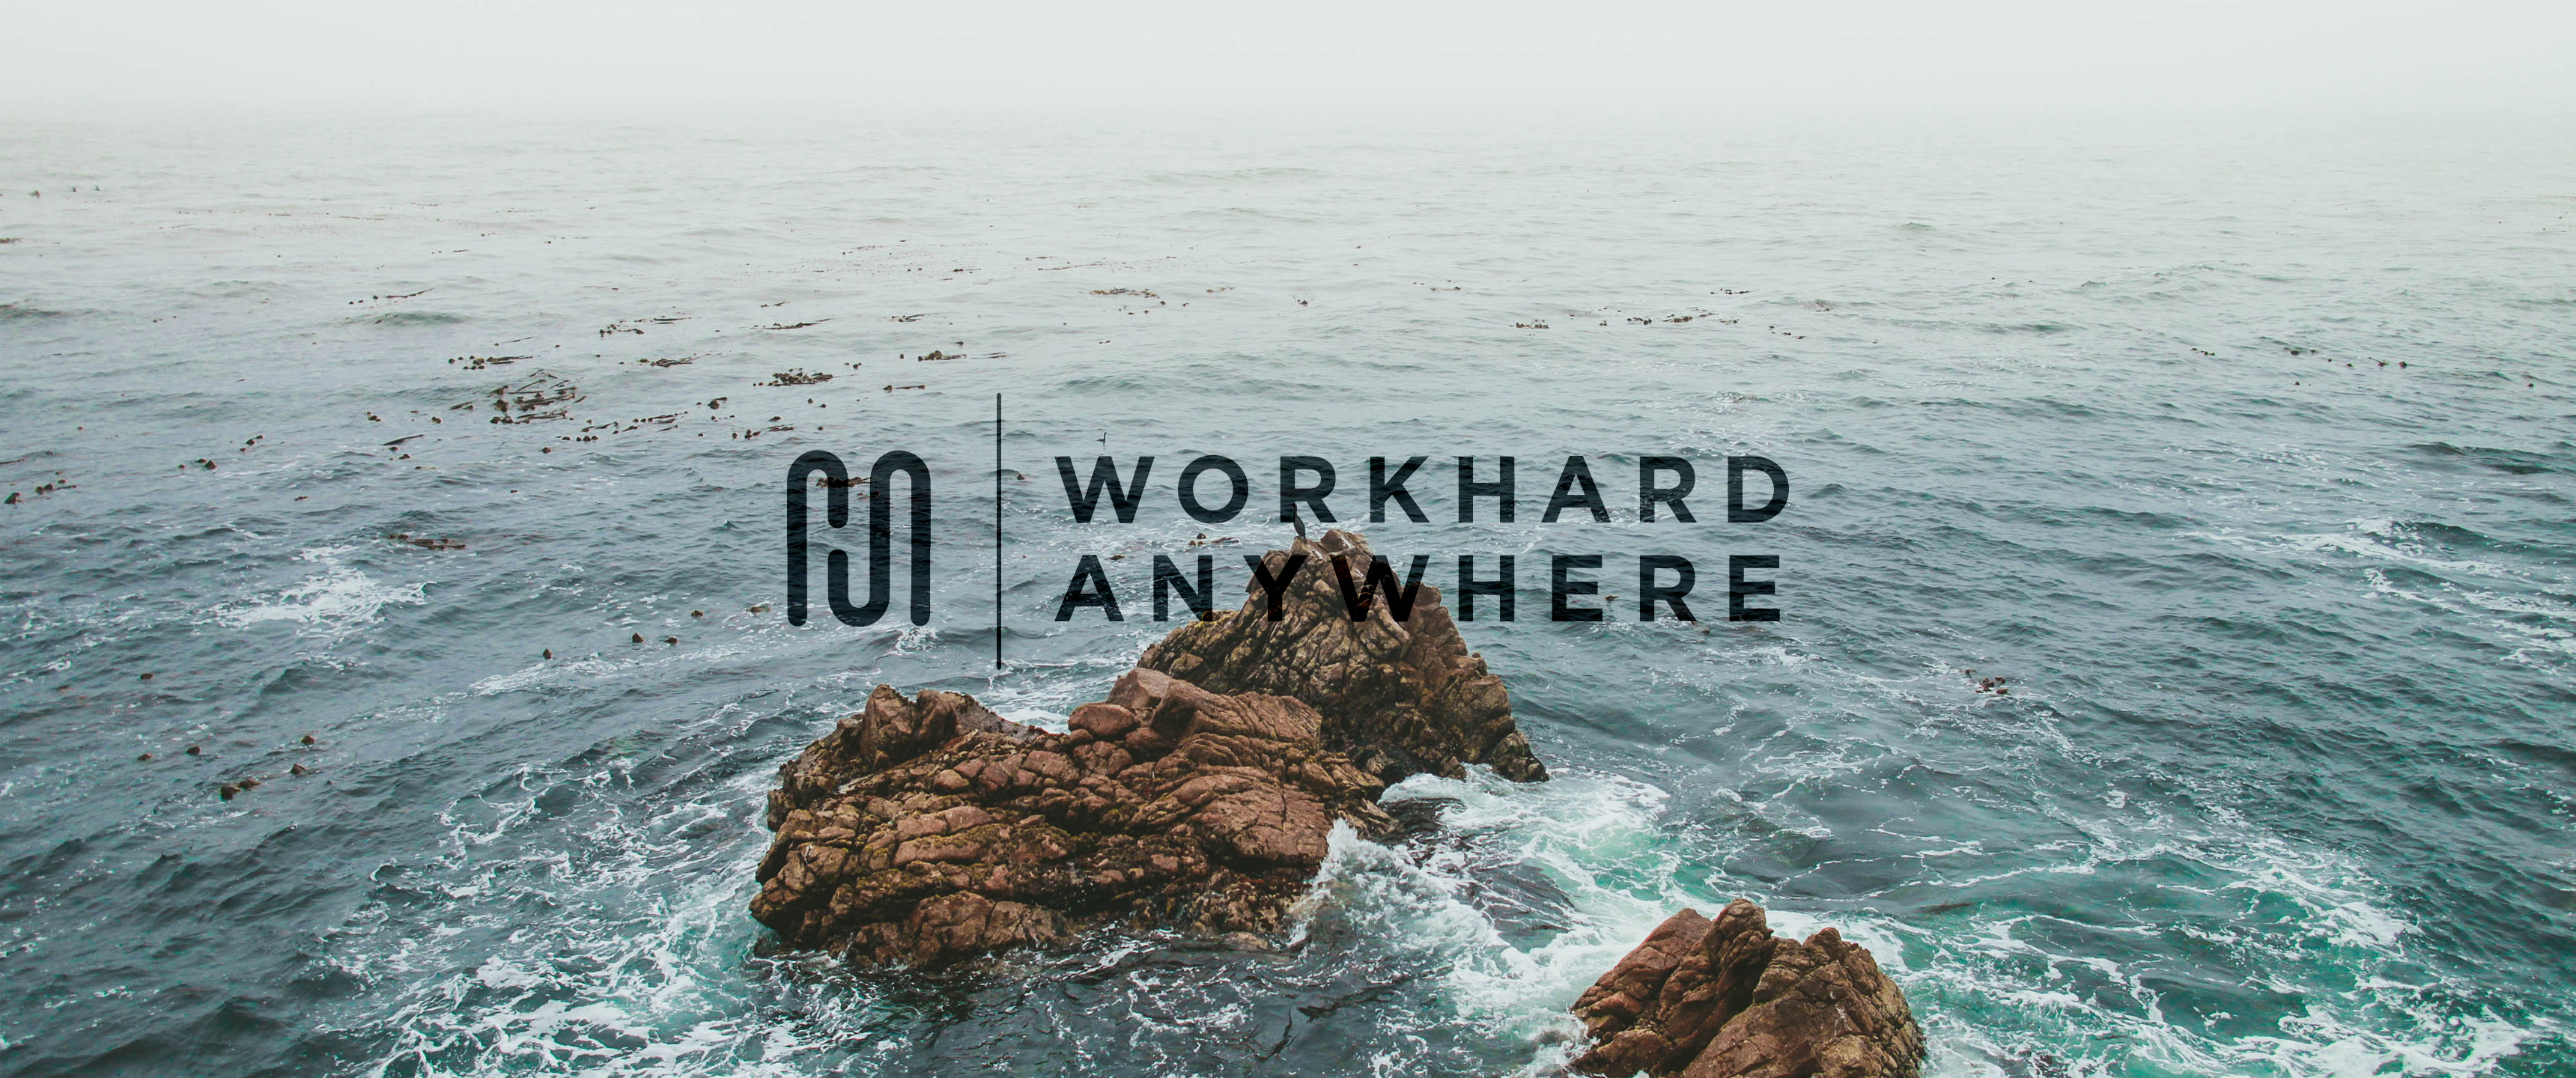 Work Hard Anywhere Limited Edition Wallpaper 3 Of Sea